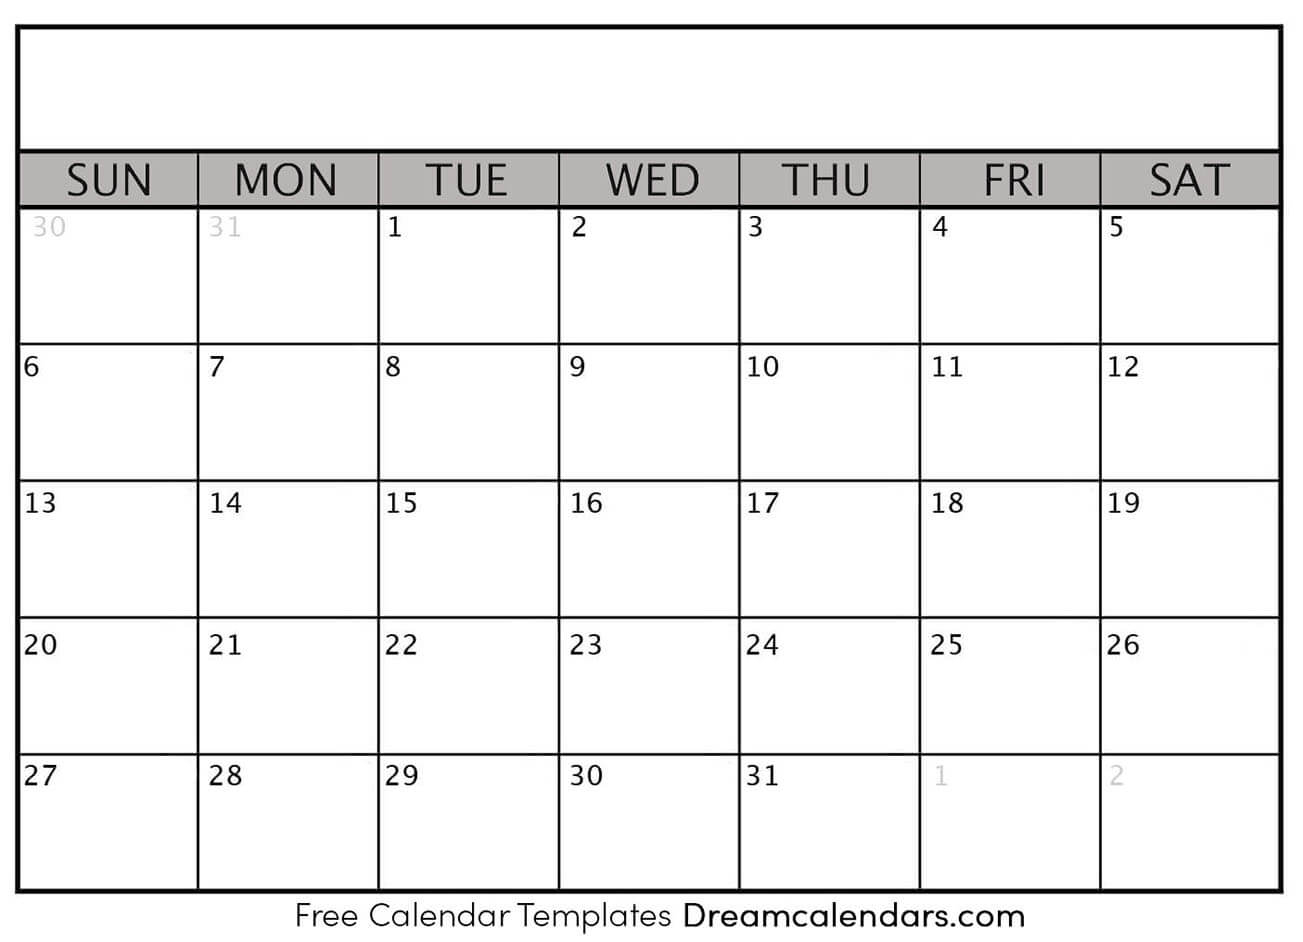 Dream Calendars - Make Your Calendar Template Blog